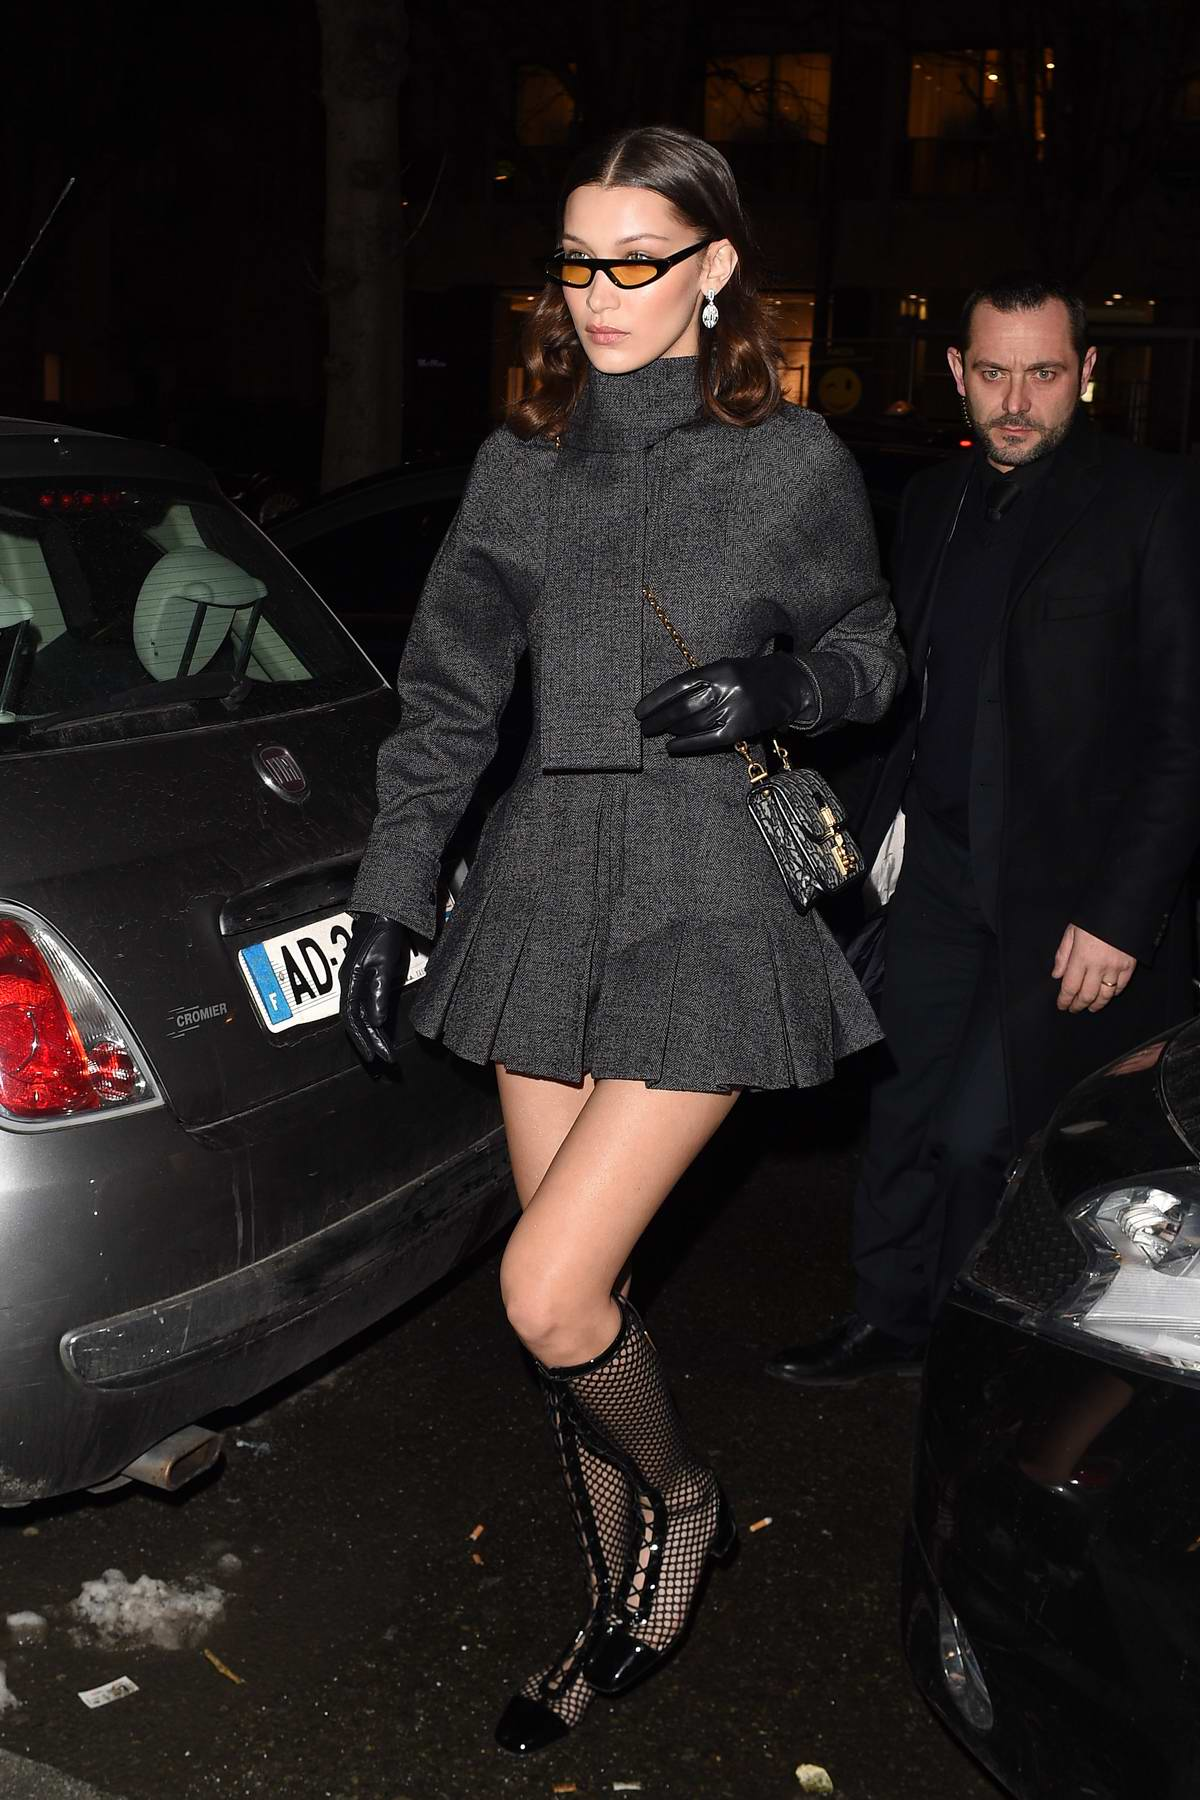 Bella Hadid wearing a grey short dress while leaving the Royal Monceau Hotel in Paris, France